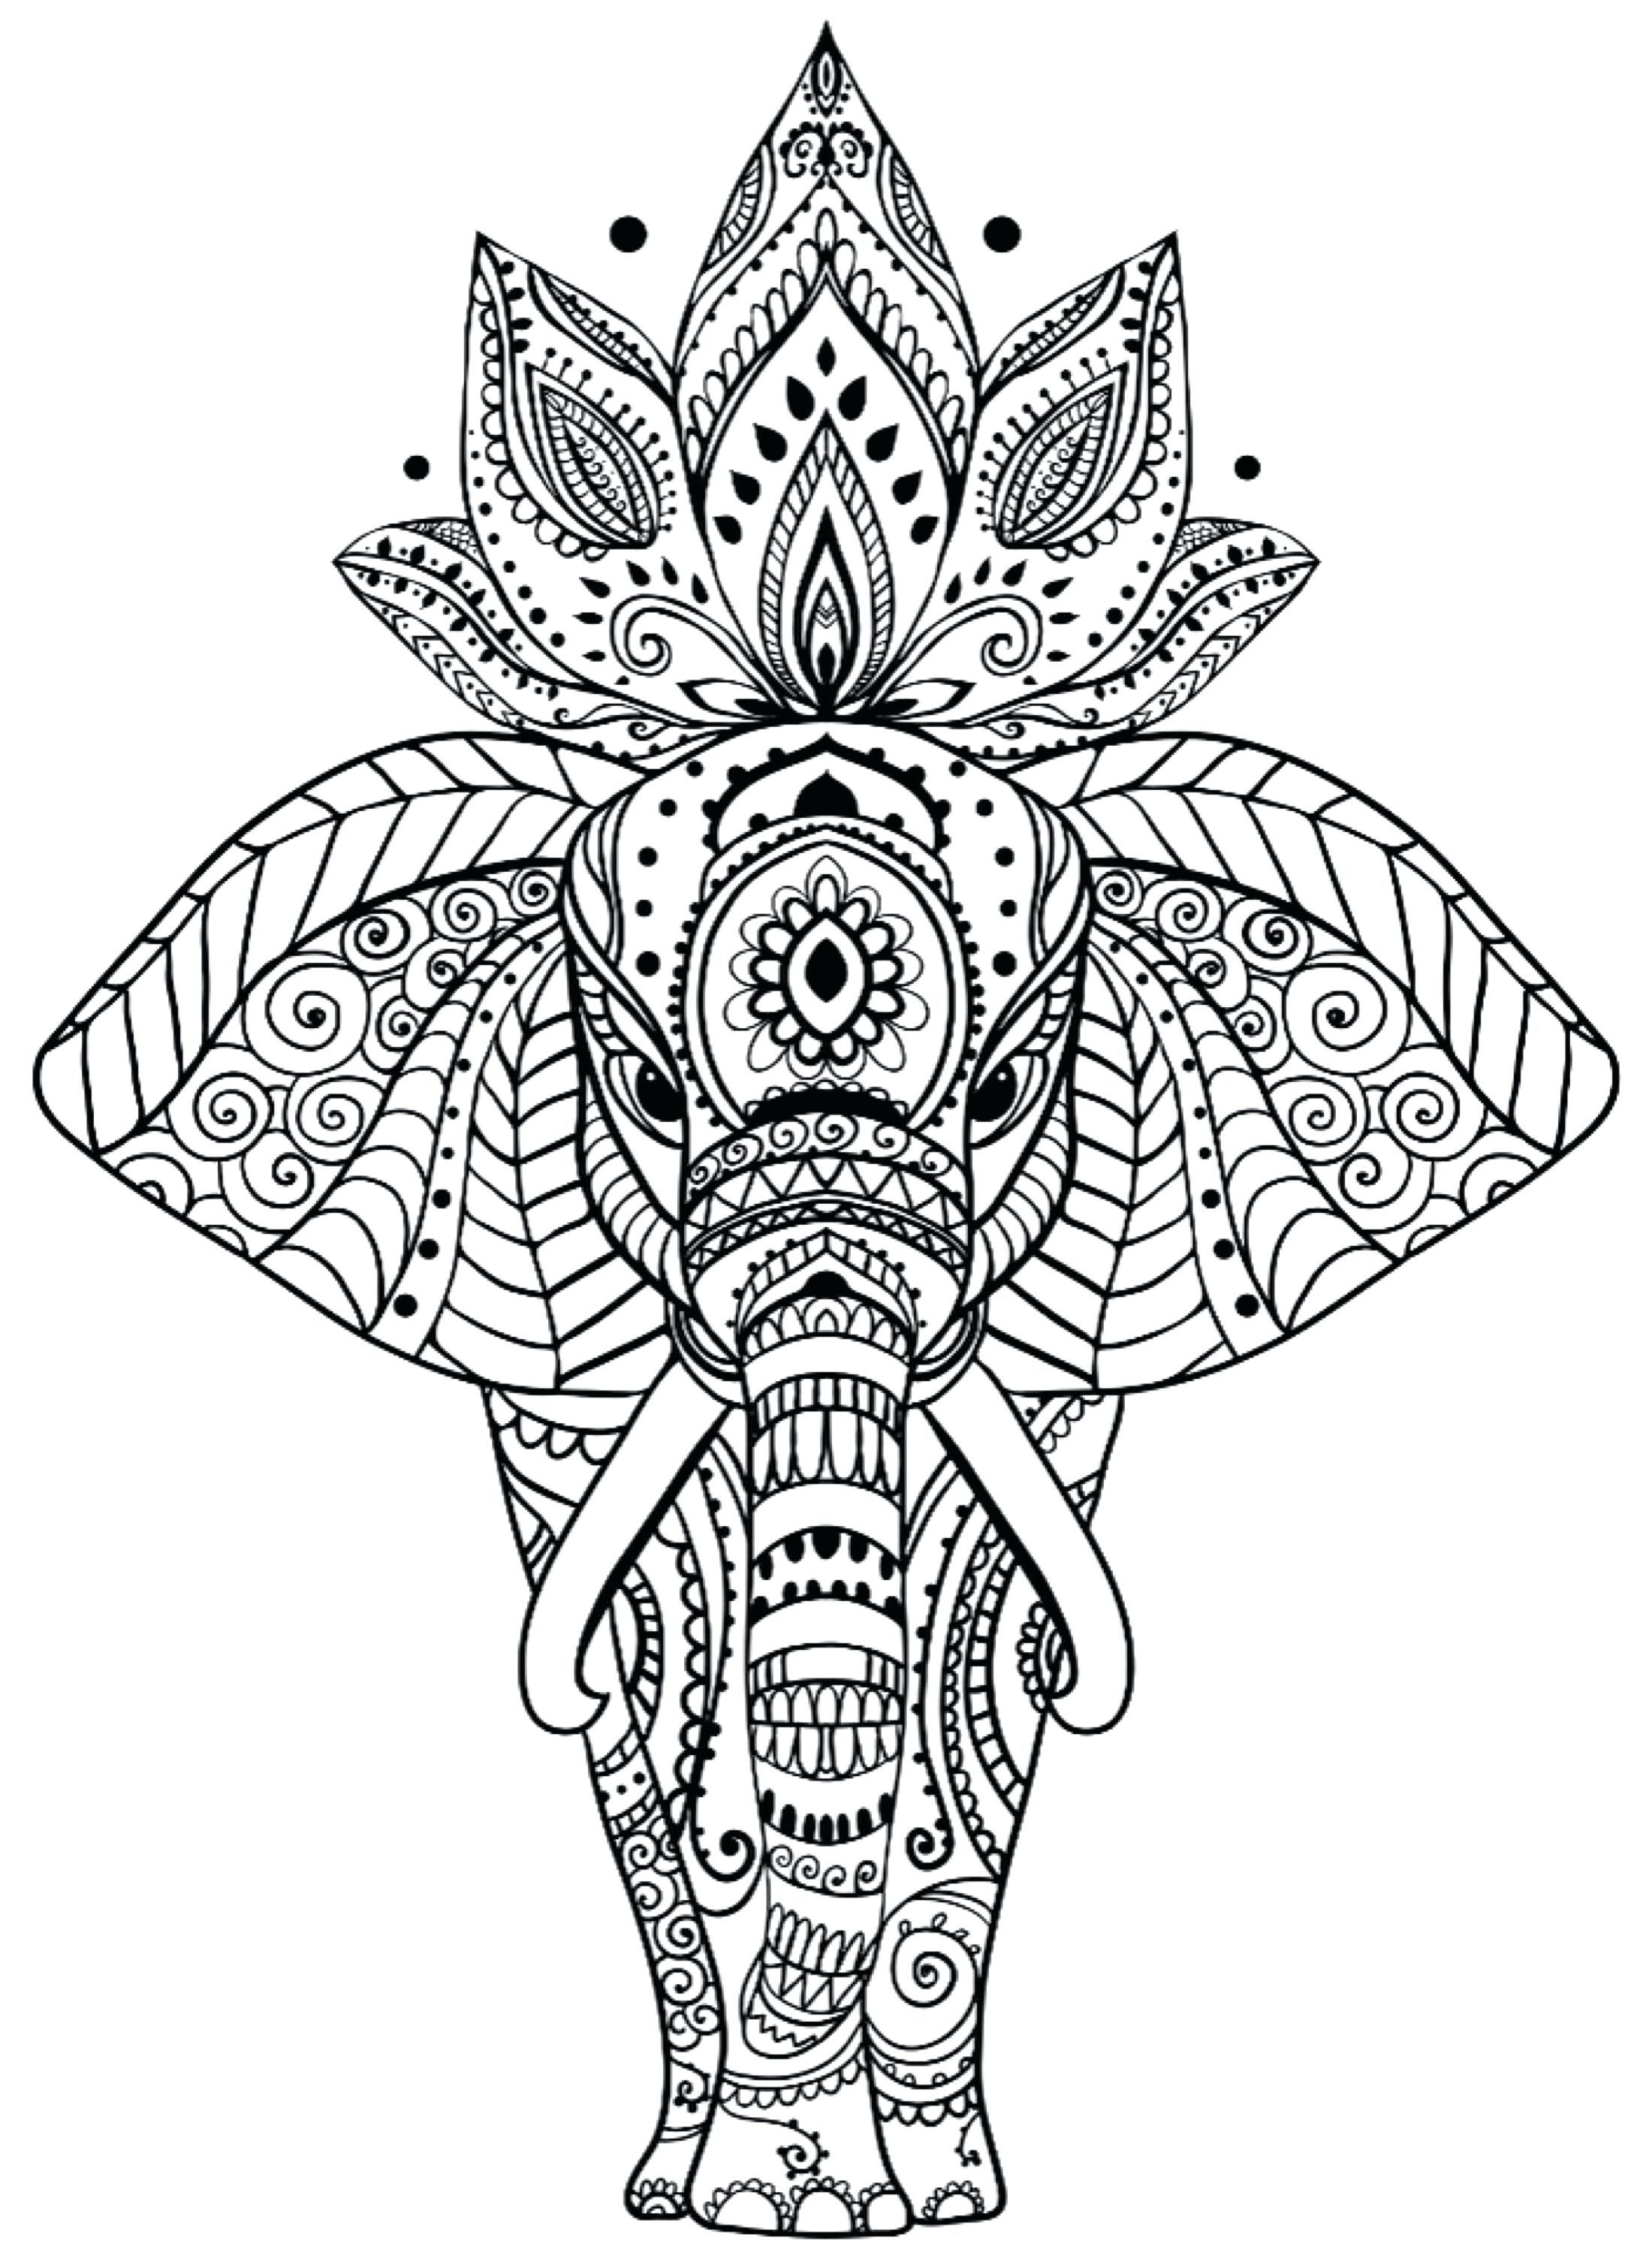 Animal Mandala Coloring Pages New Free Printable Home Of Inside Best Elephant Coloring Page Mandala Coloring Pages Mandala Coloring